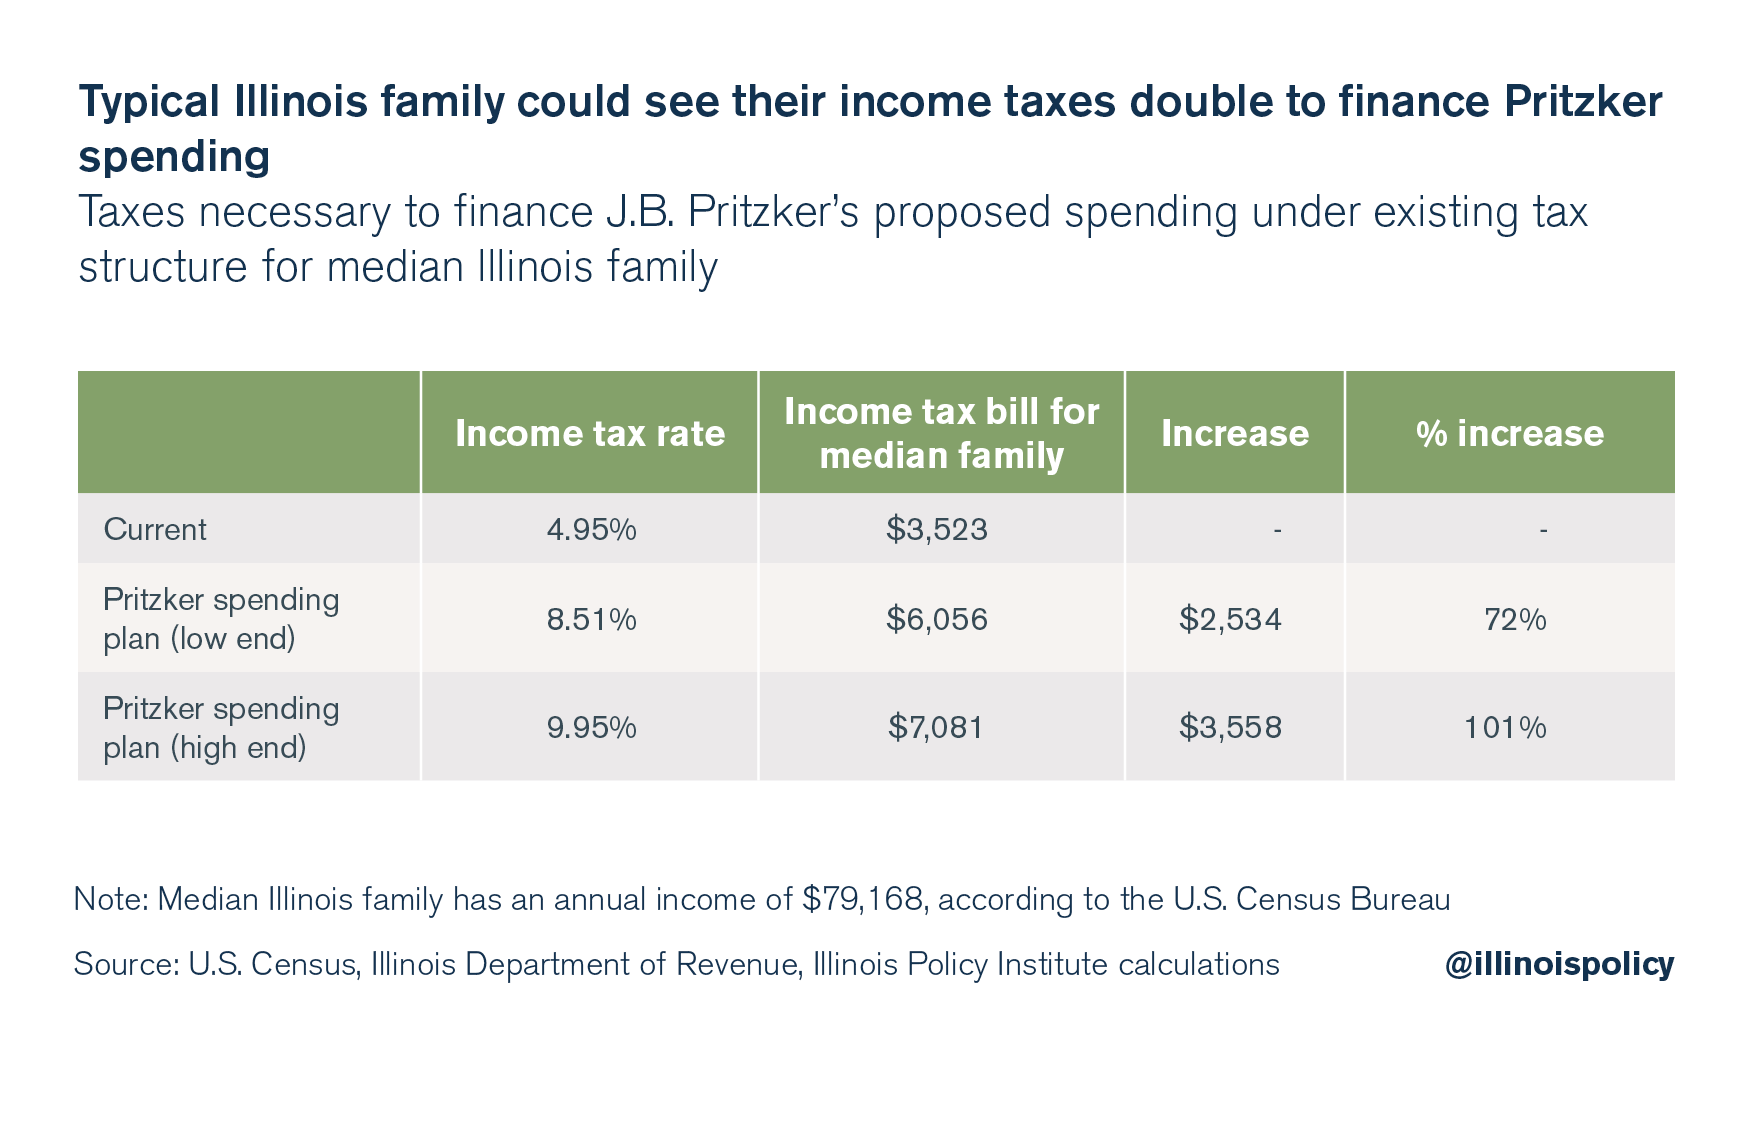 Typical Illinois family could see their income taxes double to finance Pritzker spending